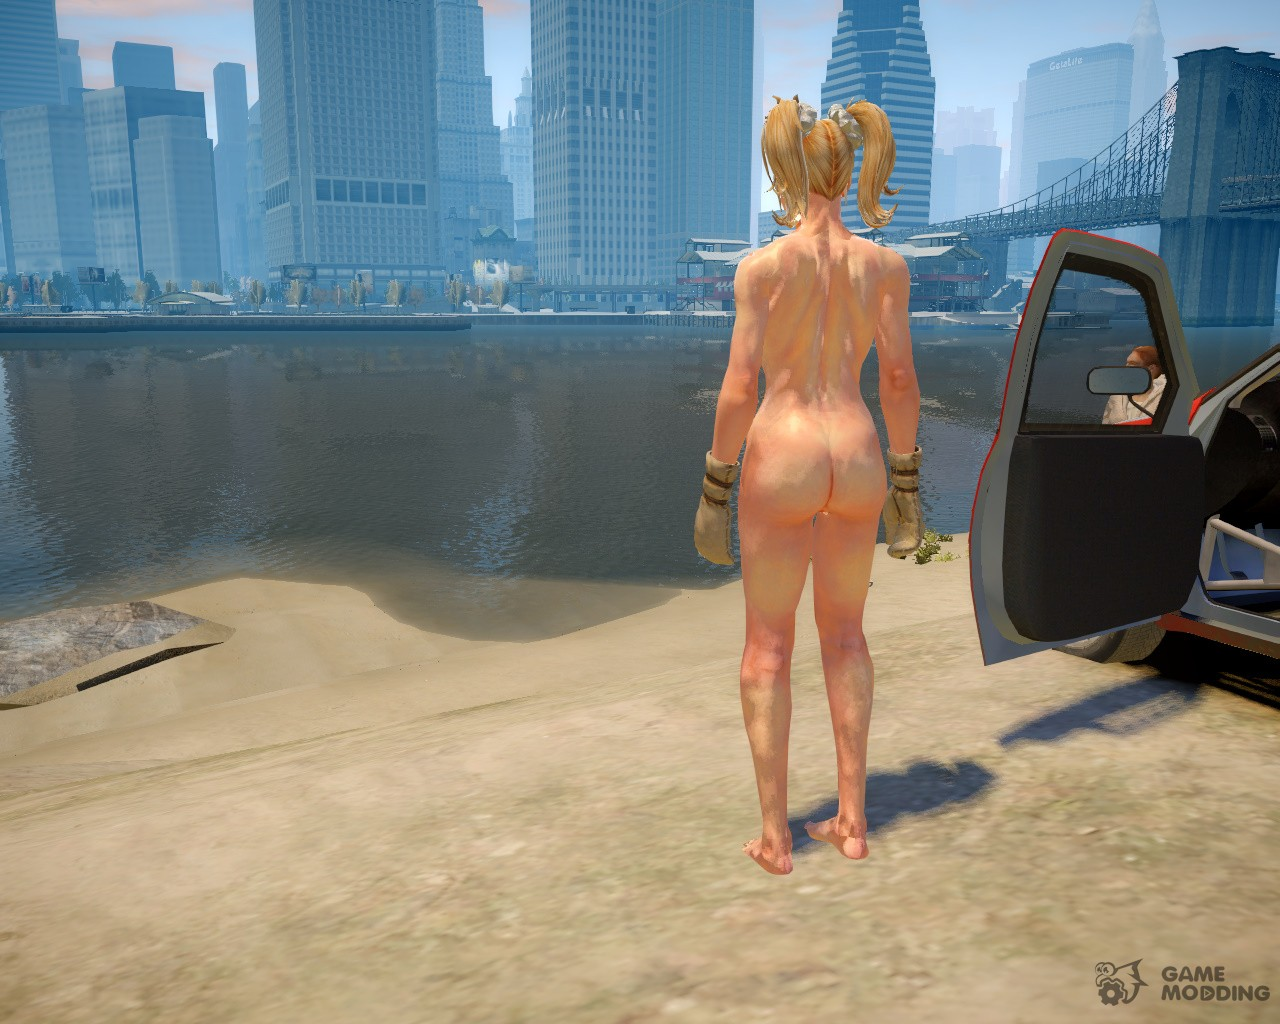 Gta 5 fuck mod adult movie